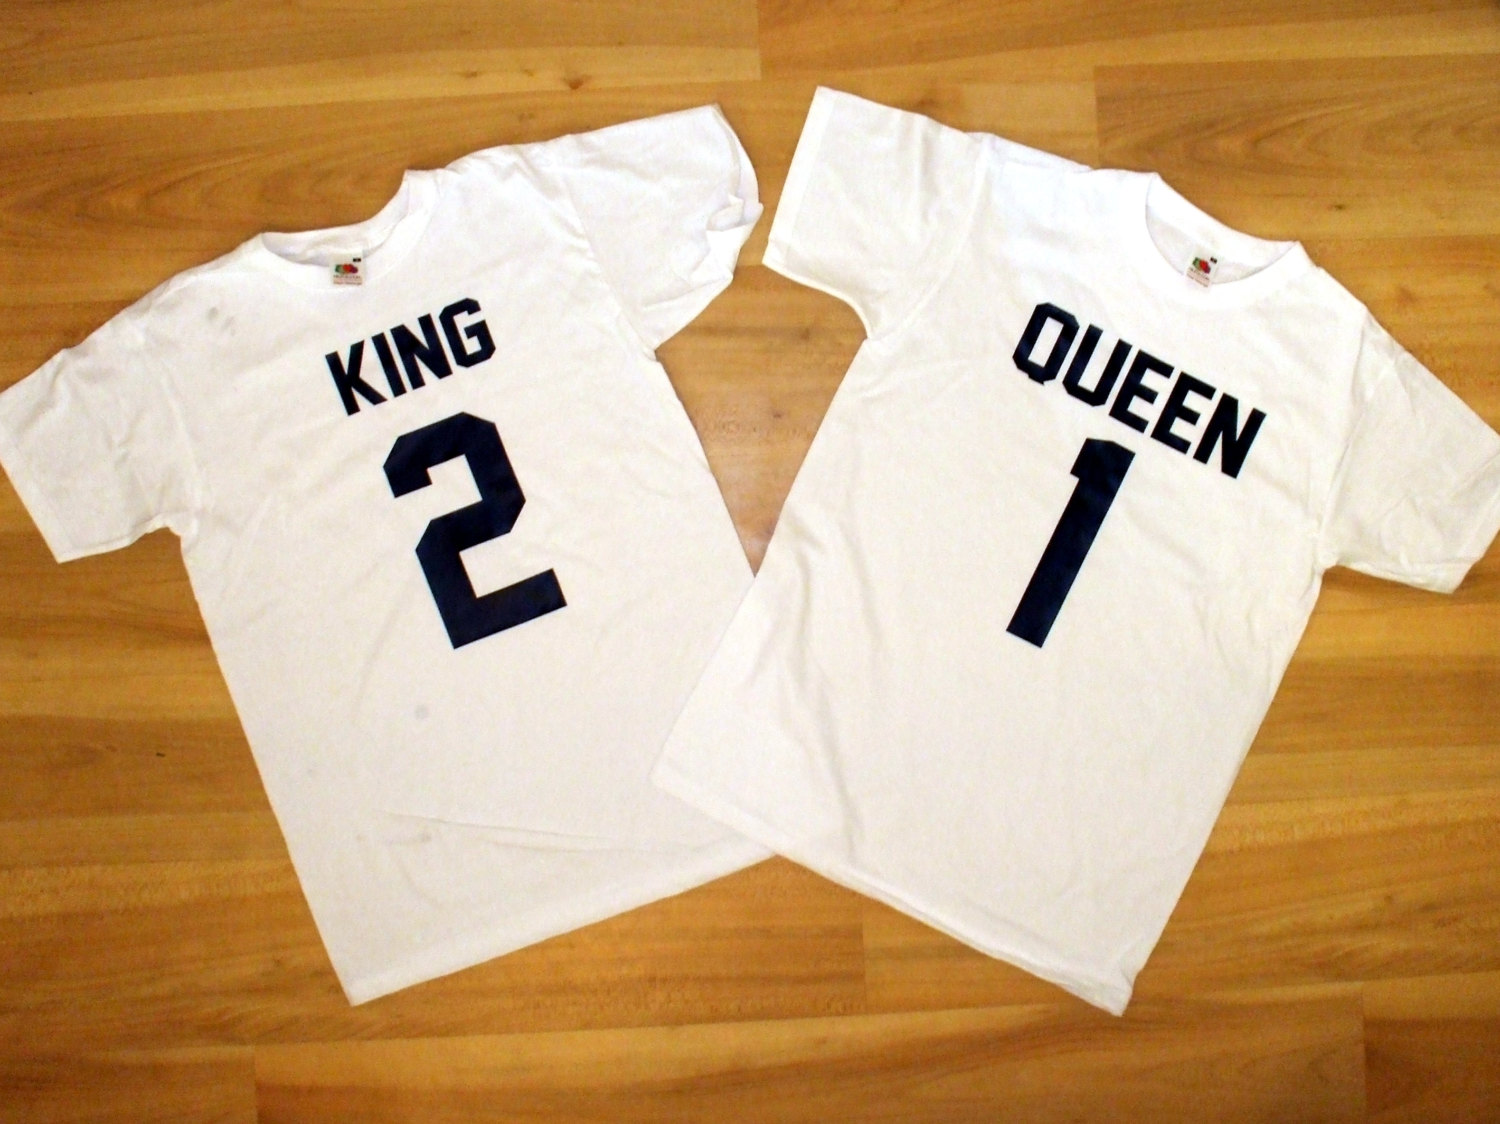 sofa king awesome t shirt wooden curved set and queen couples shirts tshirts